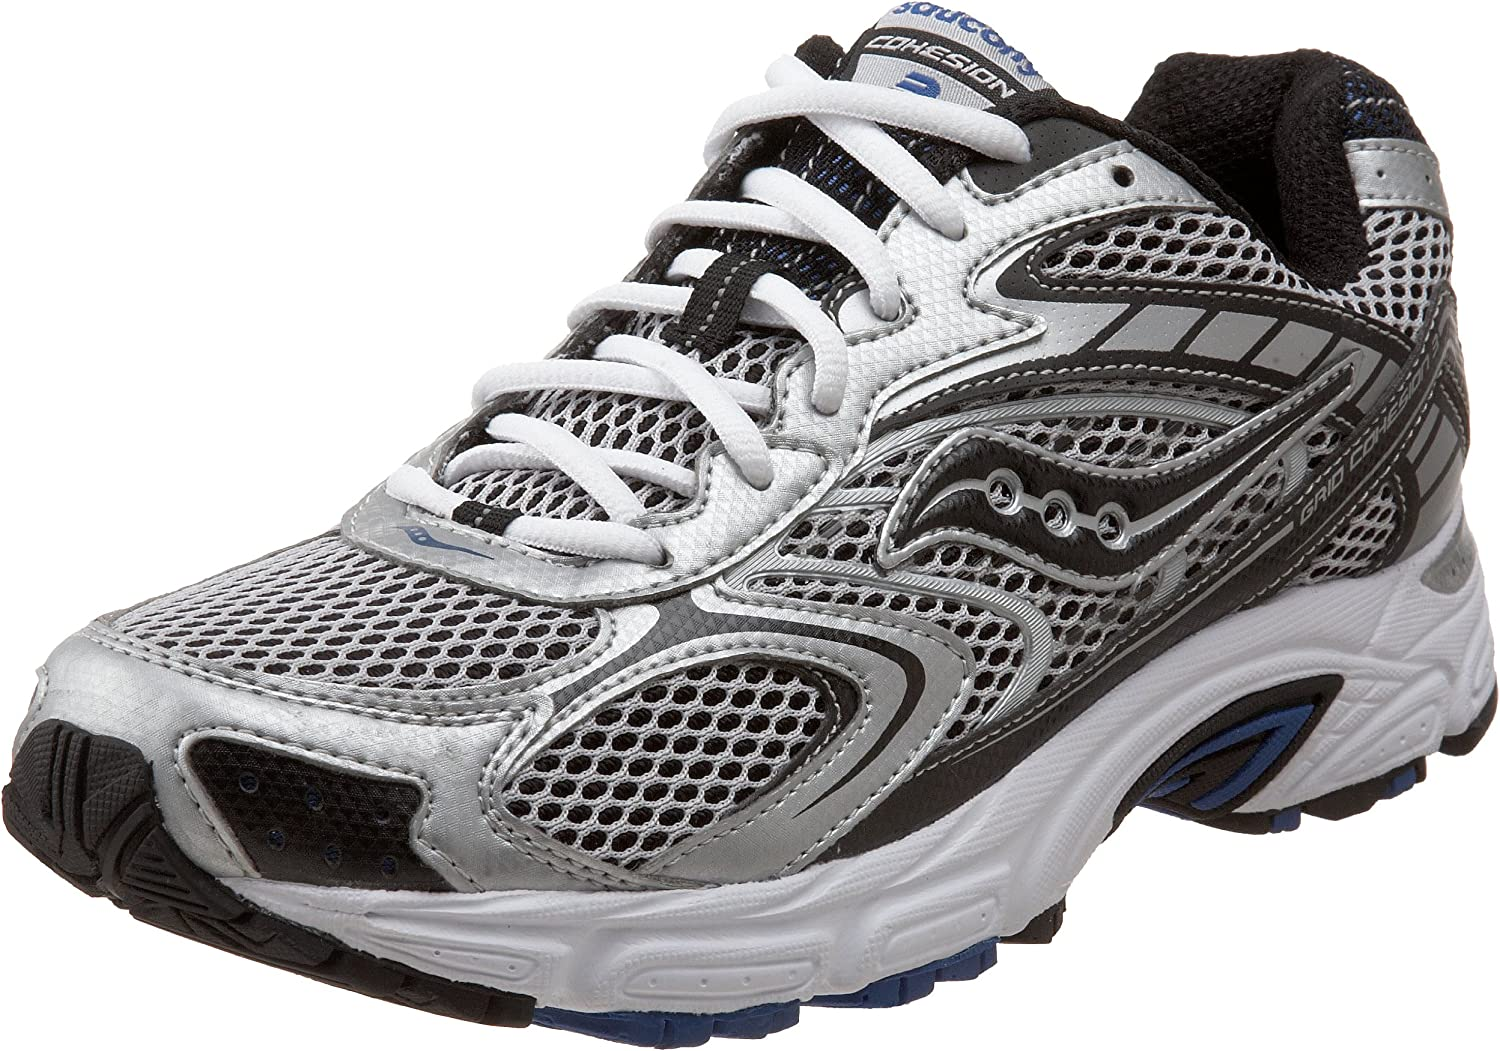 Grid Cohesion 3 Running Shoe